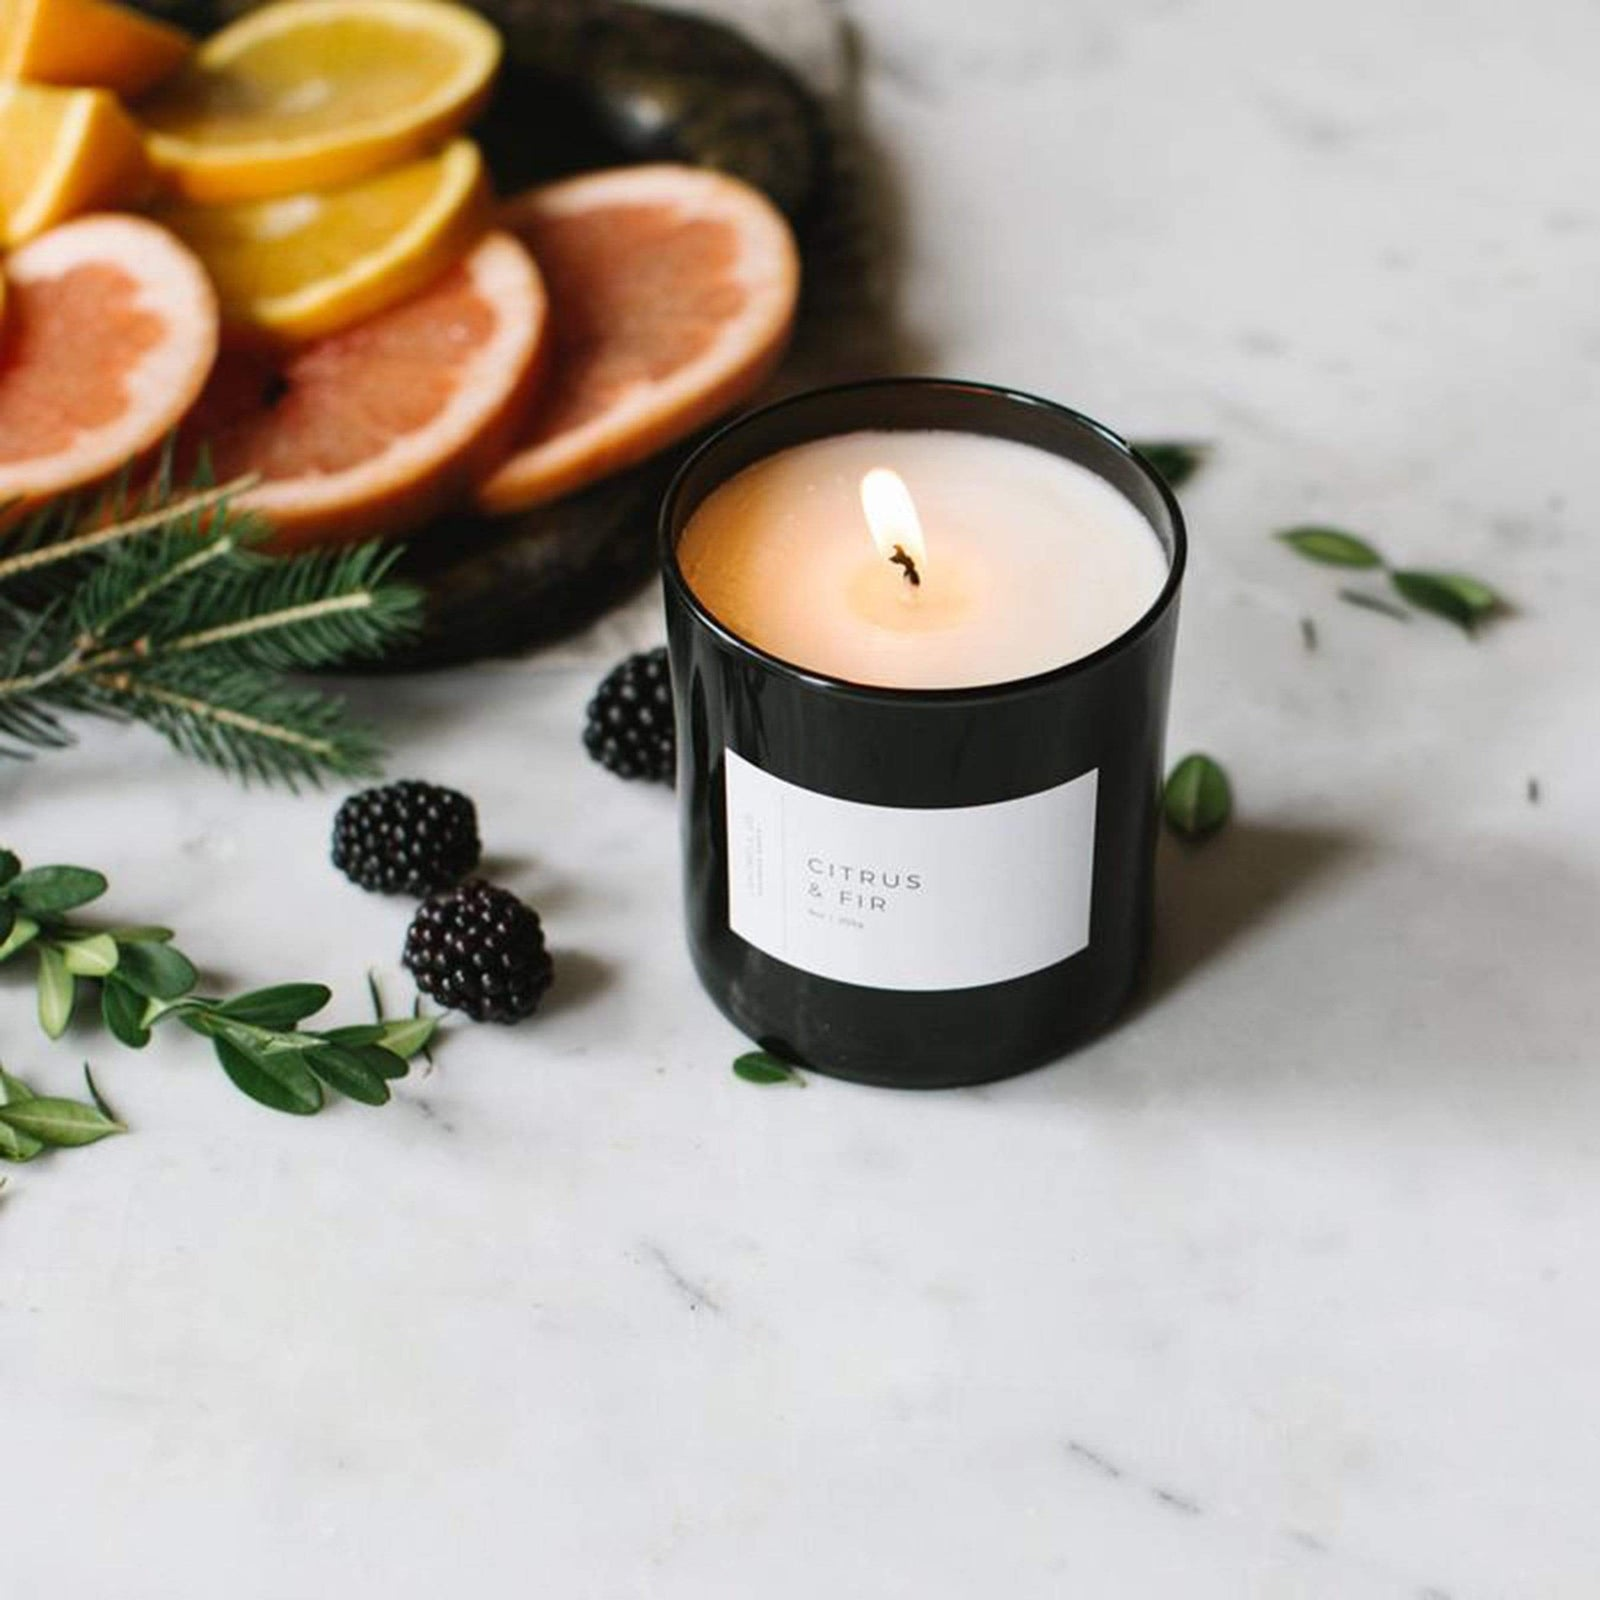 Lightwell Co. Candle Citrus & Fir Black Tumbler Candle